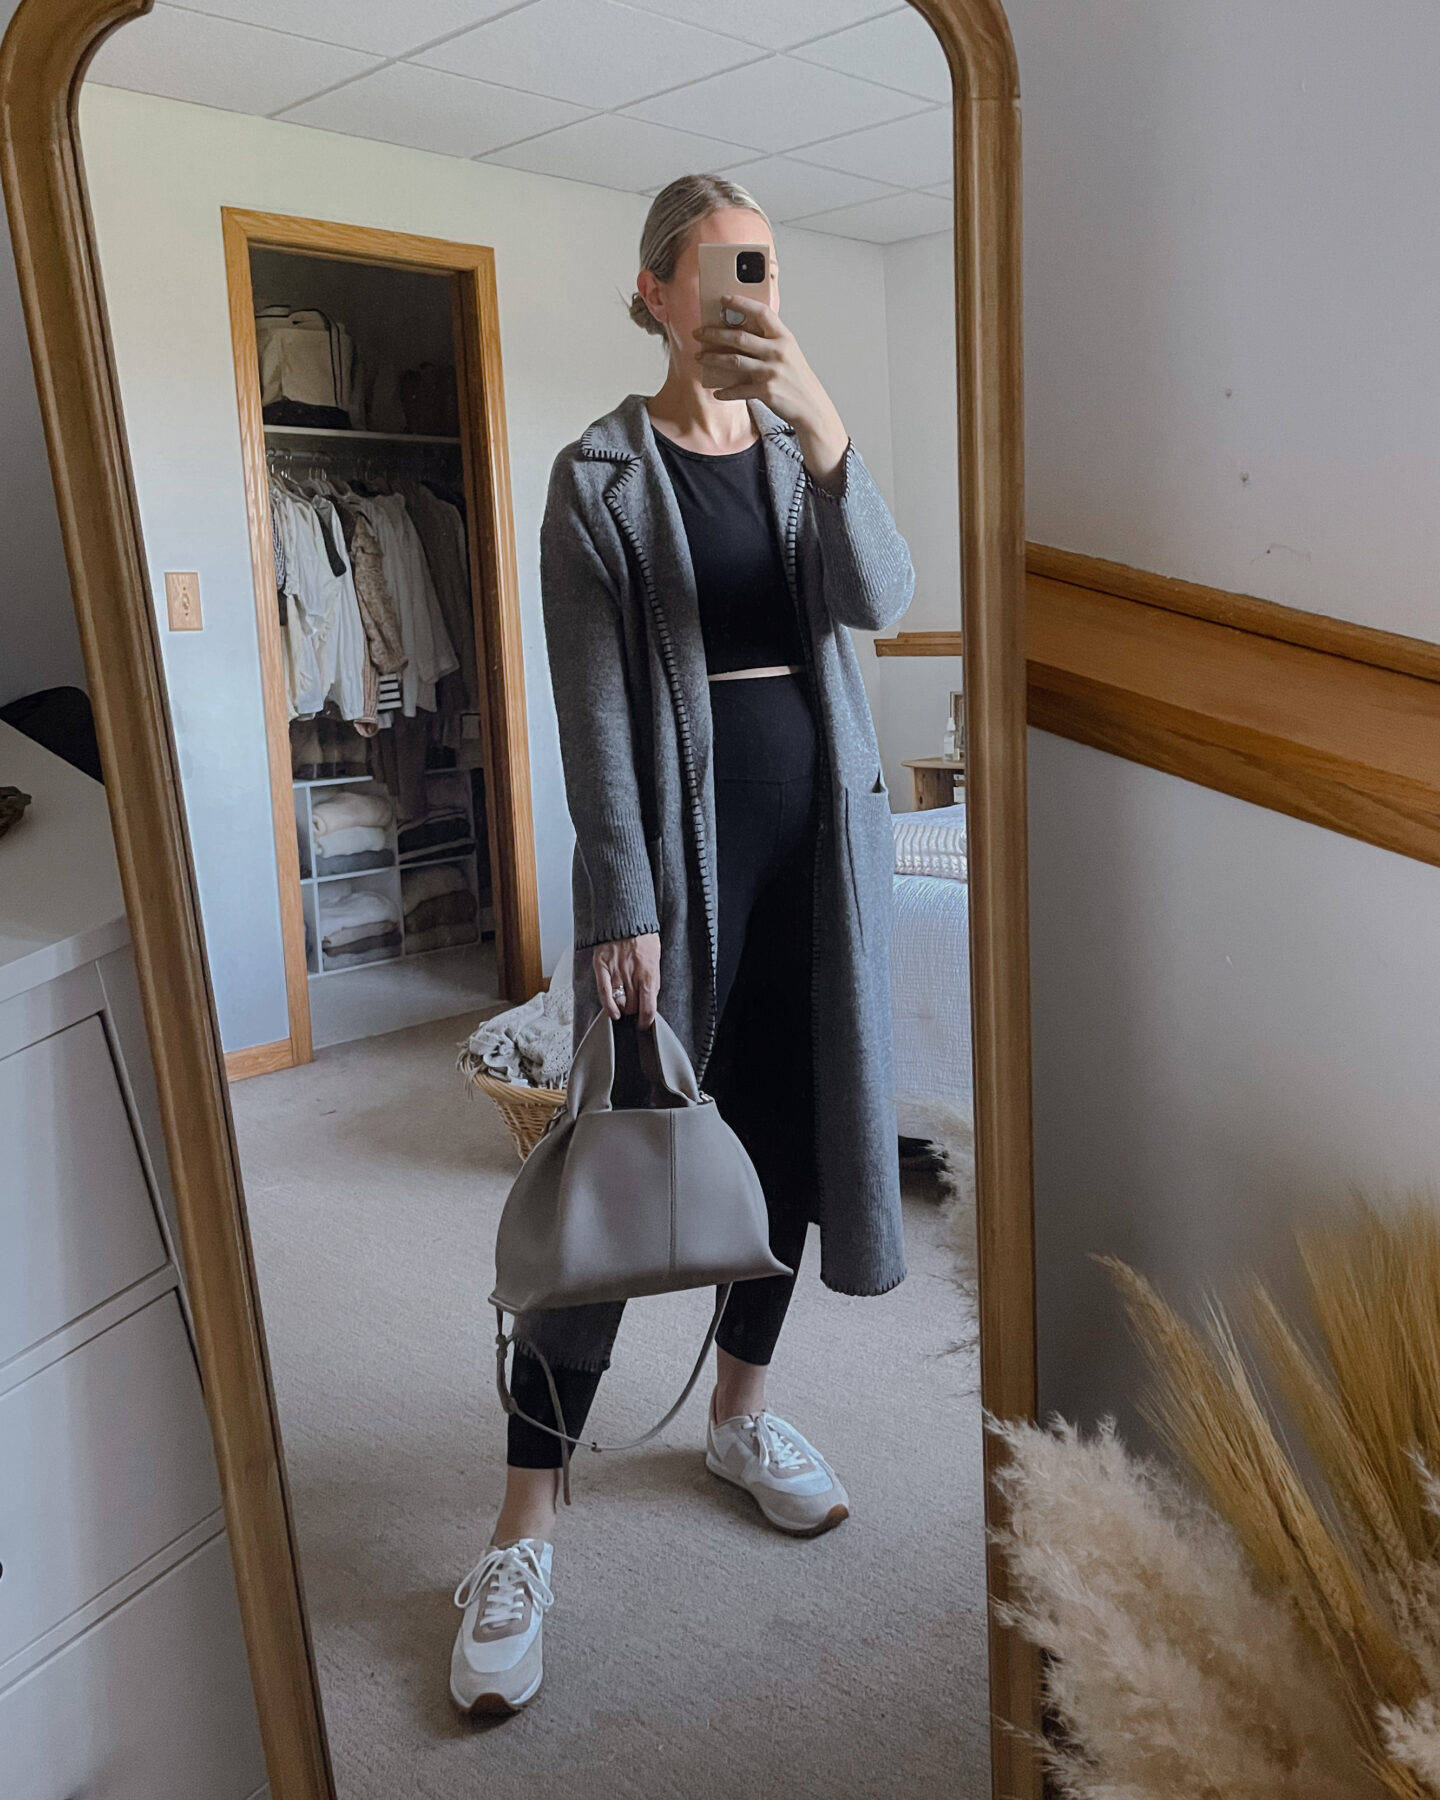 Karin Emily wears a girlfriend set with gray J. Crew sweater coat, sneakers, and a polene numero neuf bag